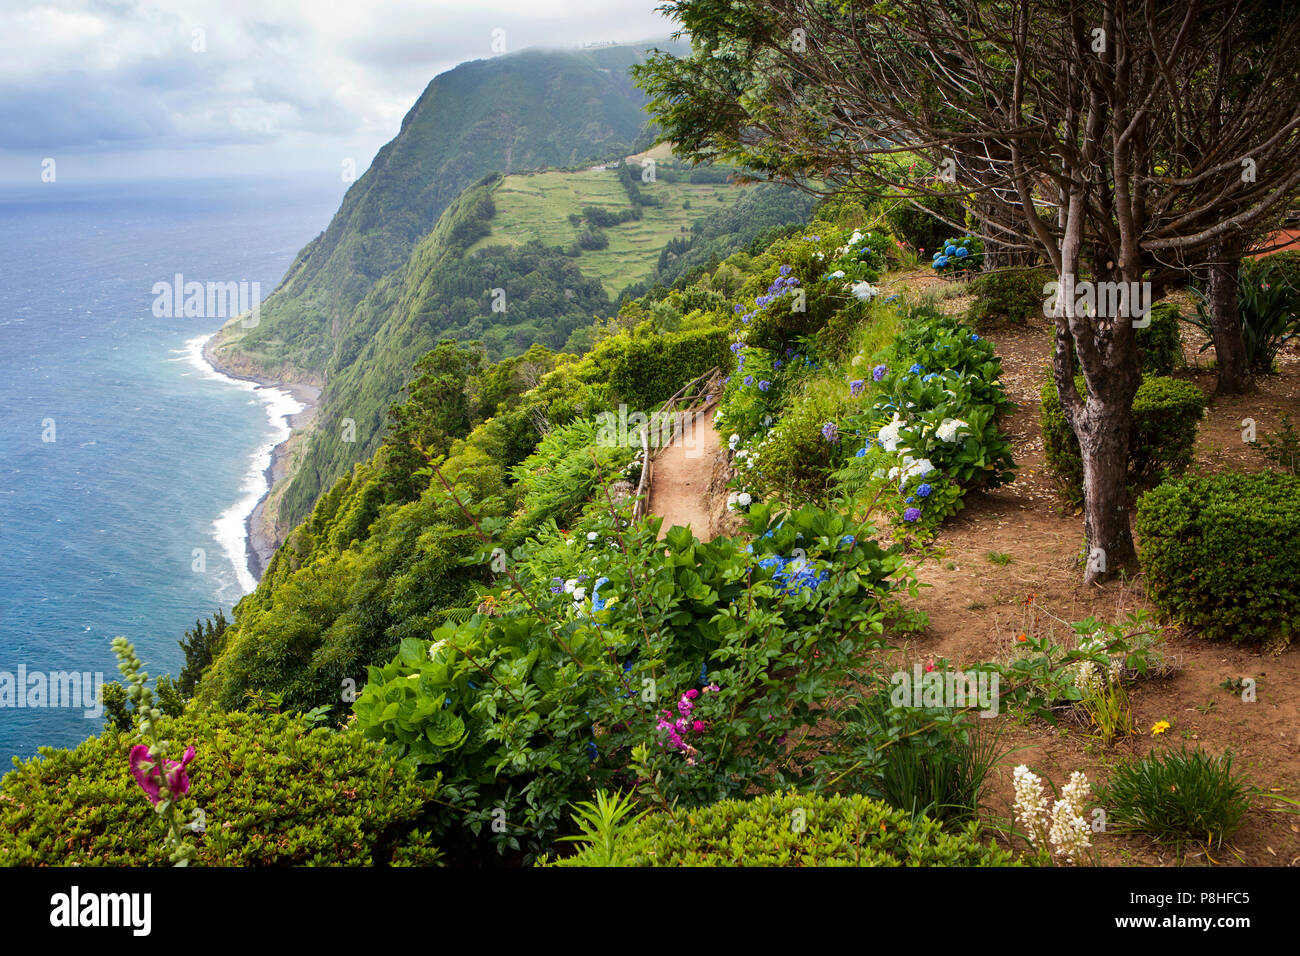 Viewpoint Ponta do Sossego, Sao Miguel Island, Azores, Portugal - Stock Image